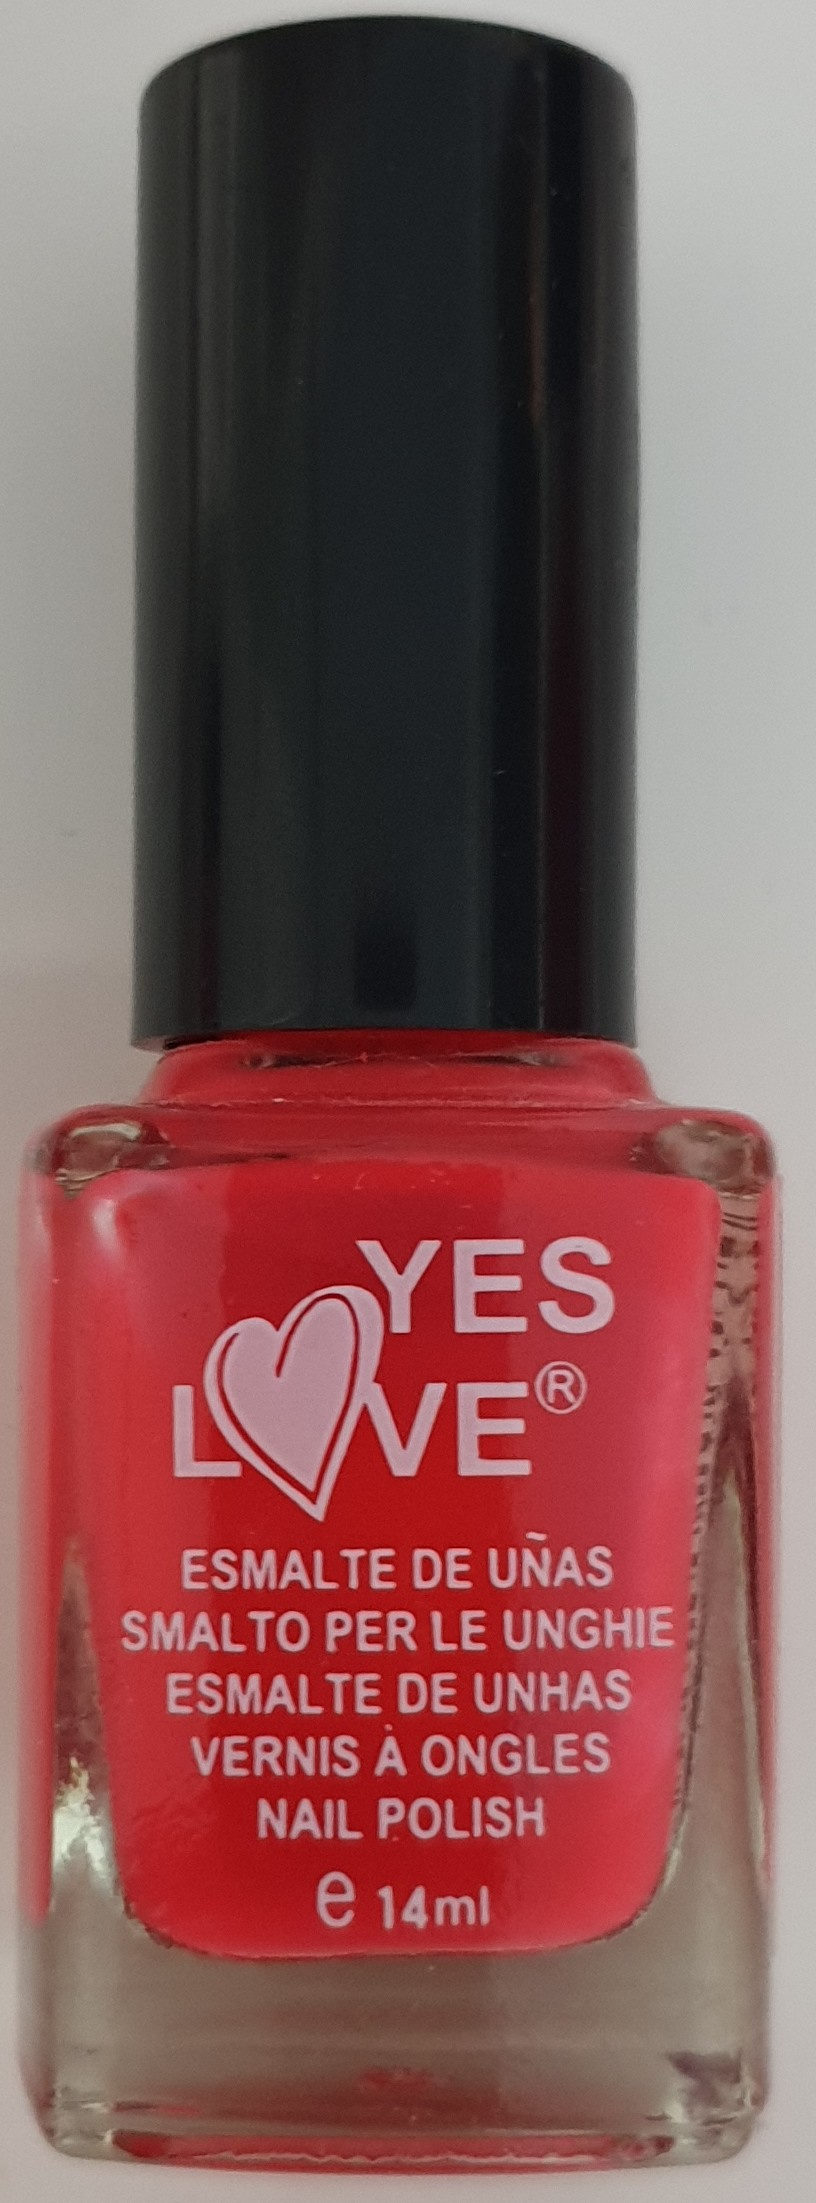 Yes love - Product